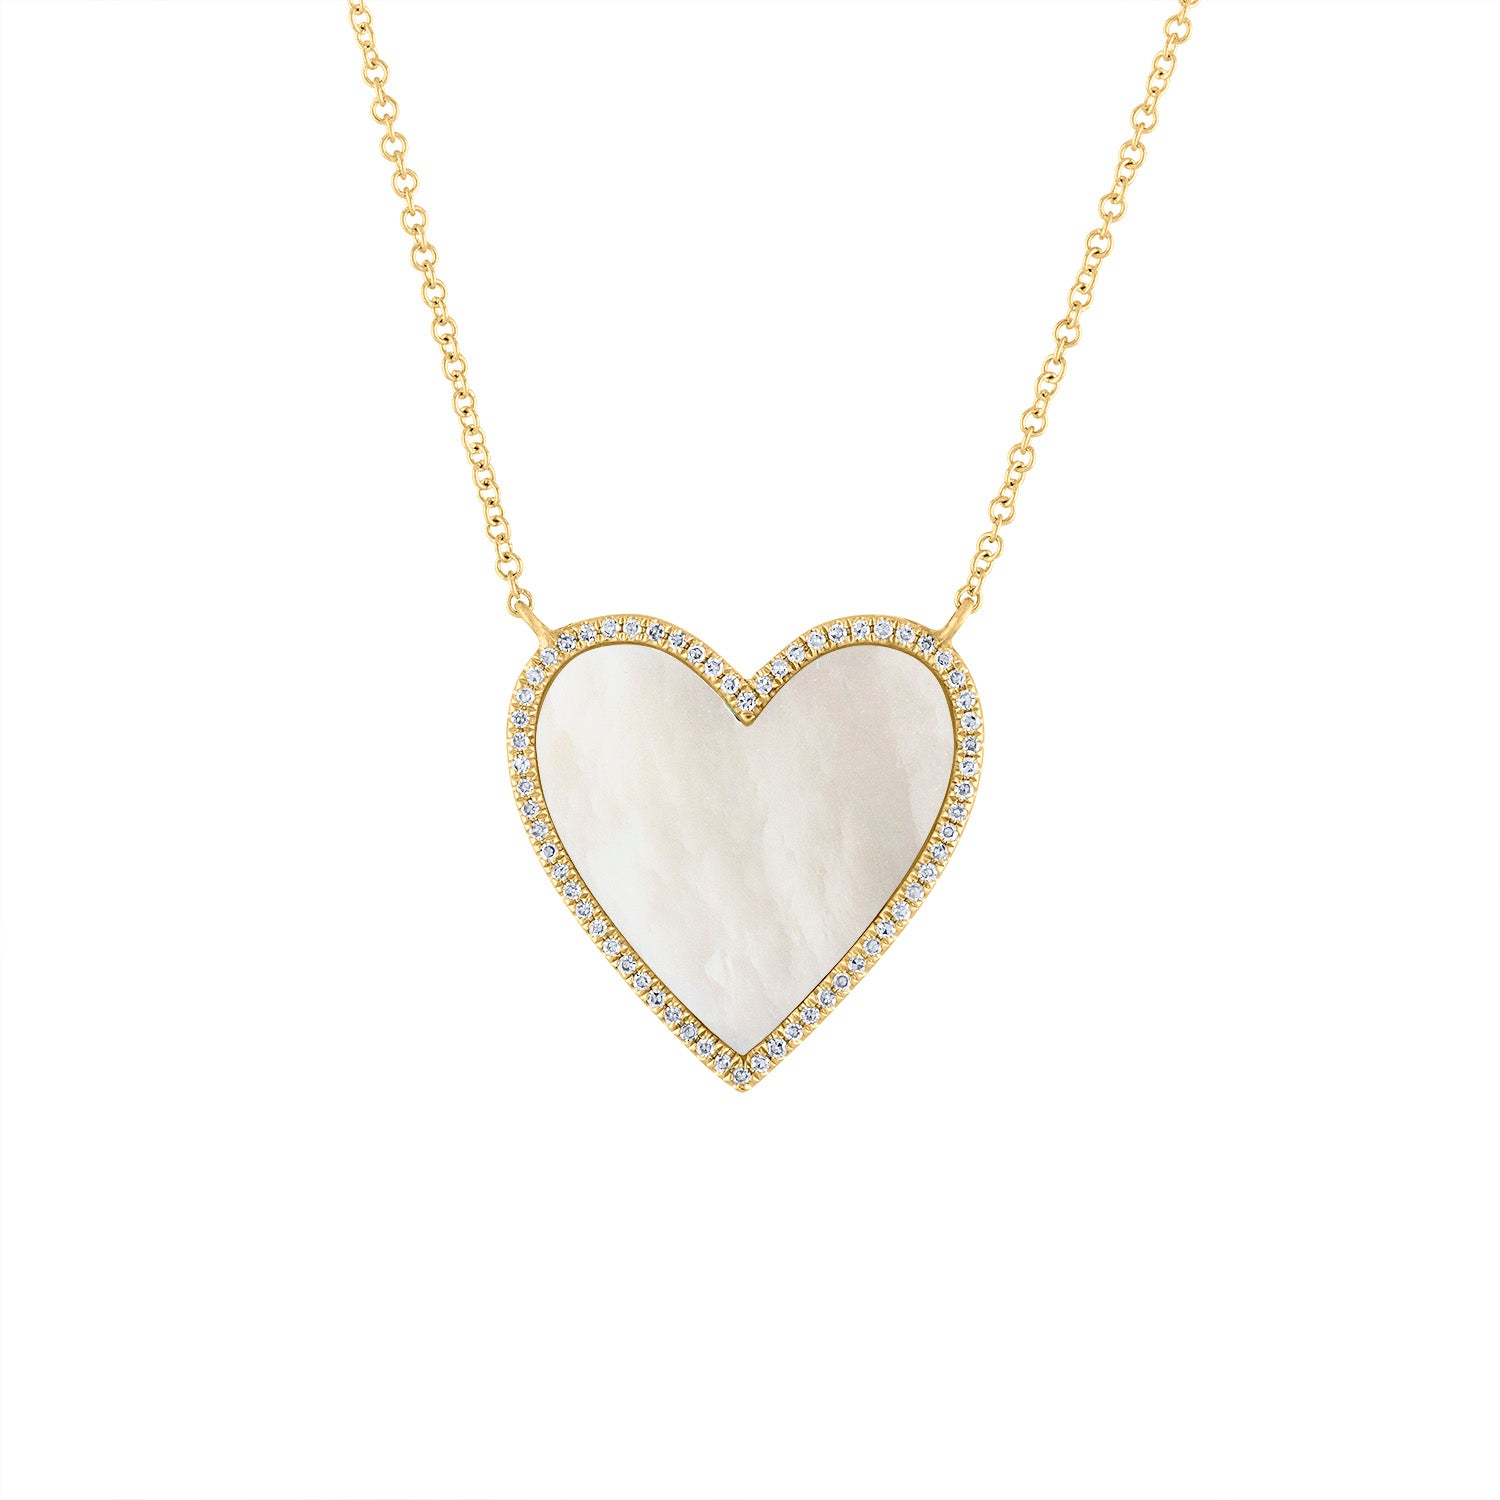 14KT GOLD DIAMOND MOTHER OF PEARL NECKLACE